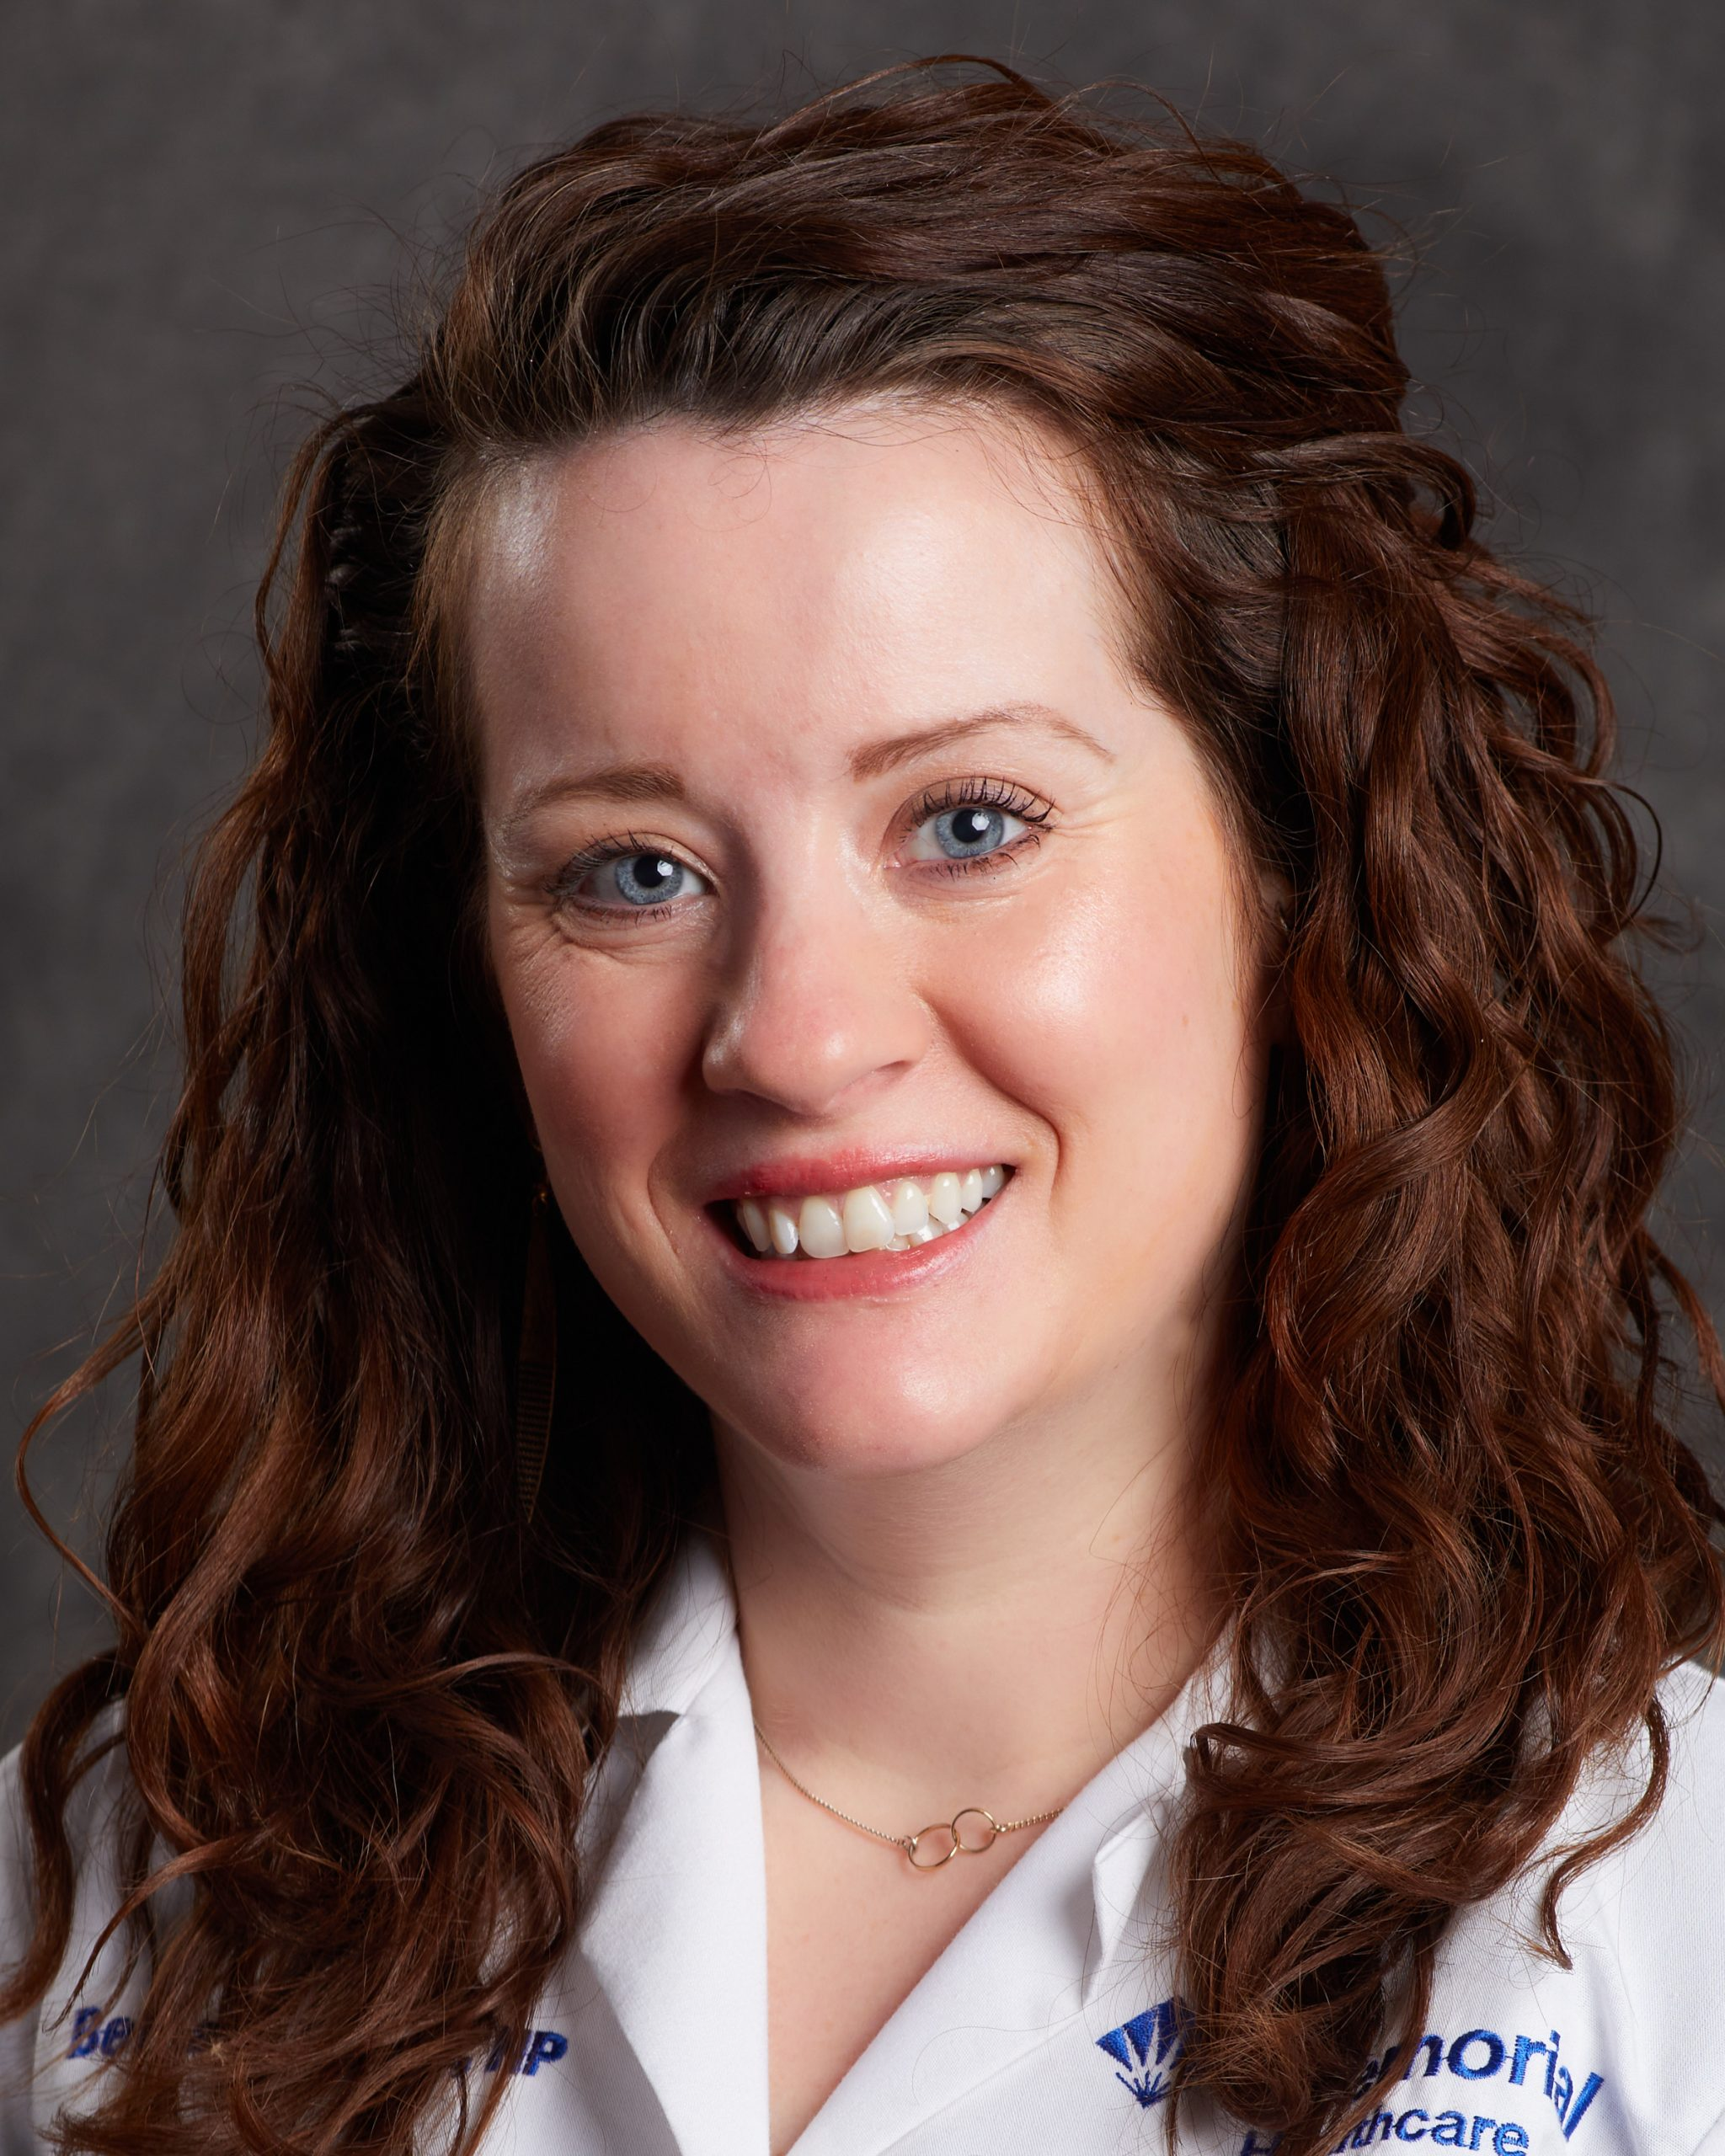 Bethany Pavon, CFNP - An Employed Provider of Memorial Healthcare